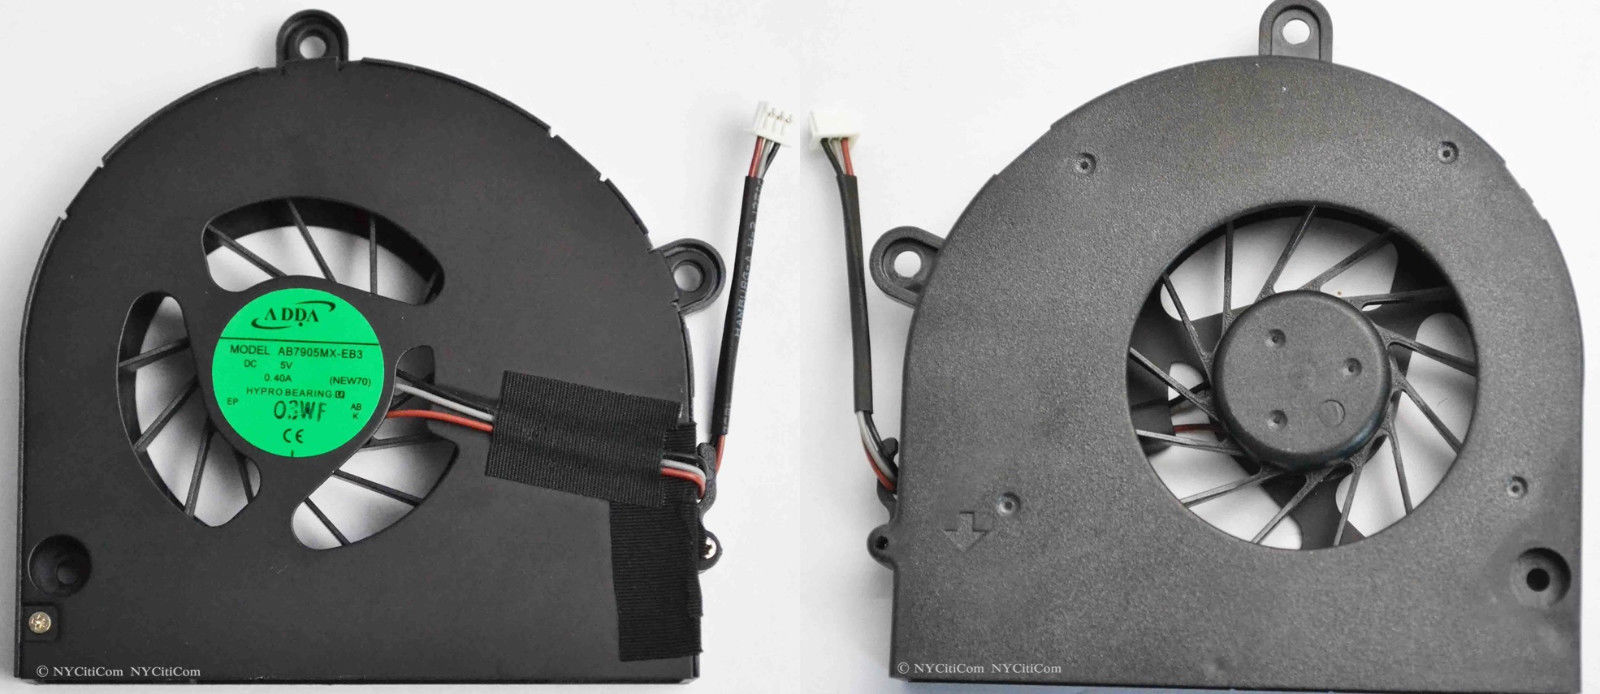 Brand New Adda CPU Fan For Toshiba C660 C665 C655 C650 Black 3 wires / pins